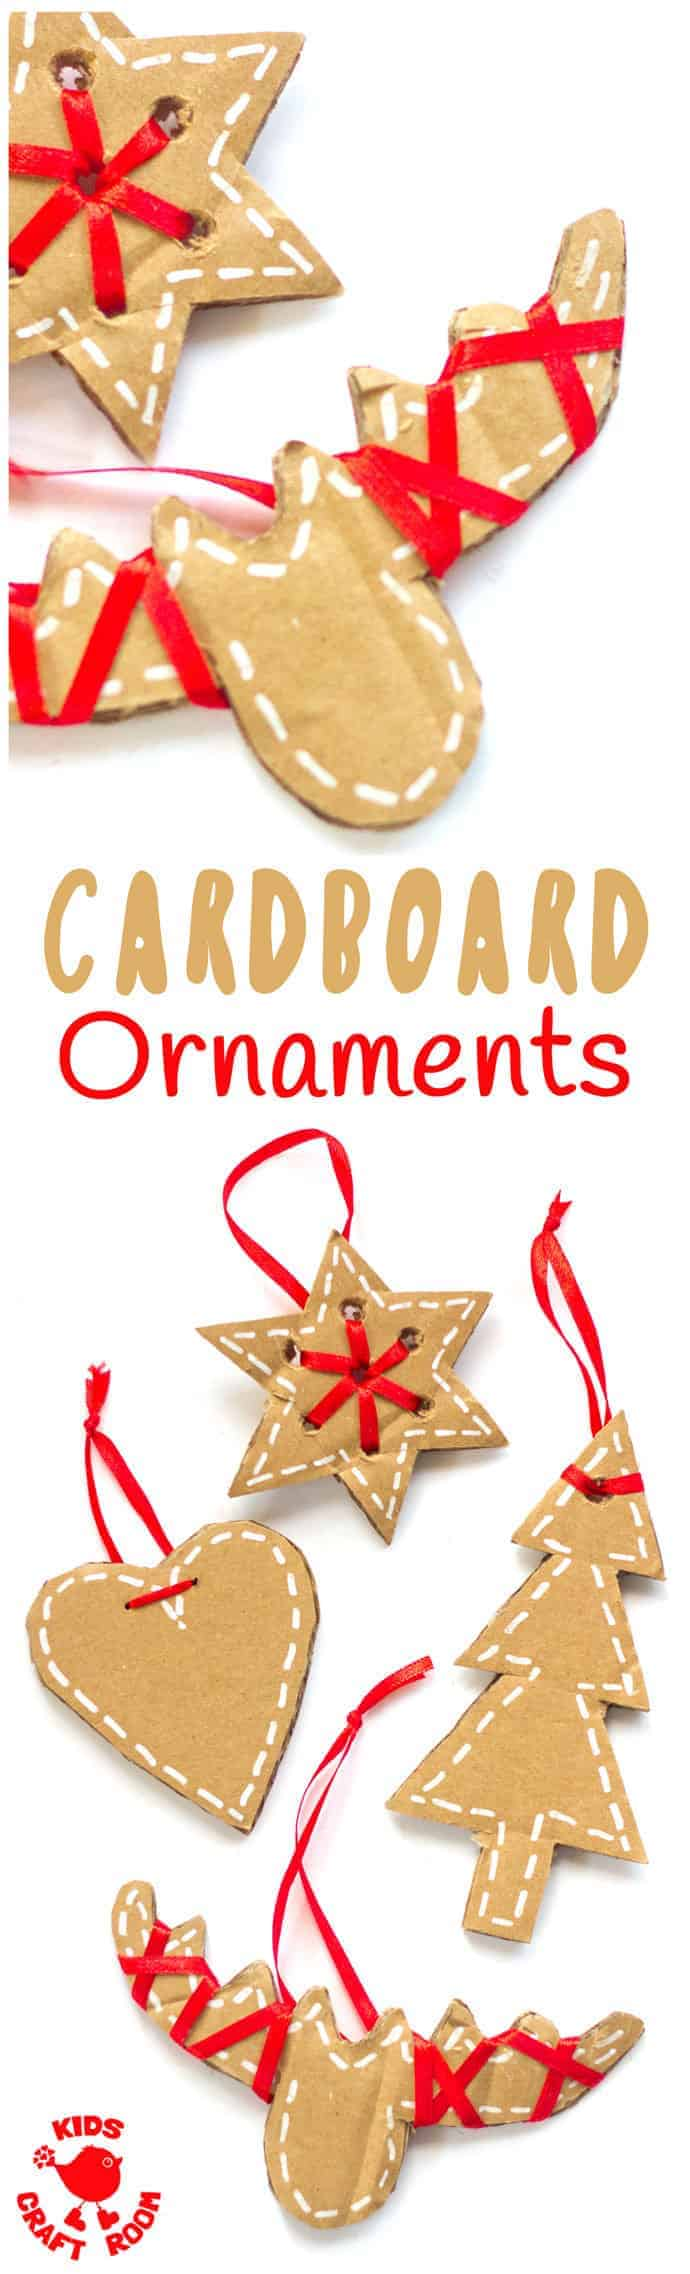 PRETTY CARDBOARD ORNAMENTS - These rustic DIY cardboard ornaments are a fantastic recycled crafts that will make your Christmas tree and home gorgeous this Winter. A simple Christmas craft for kids and adults. #christmas #christmascrafts #kidscrafts #recycledcrafts #ornaments #kidscraftroom #cardboard #recycled